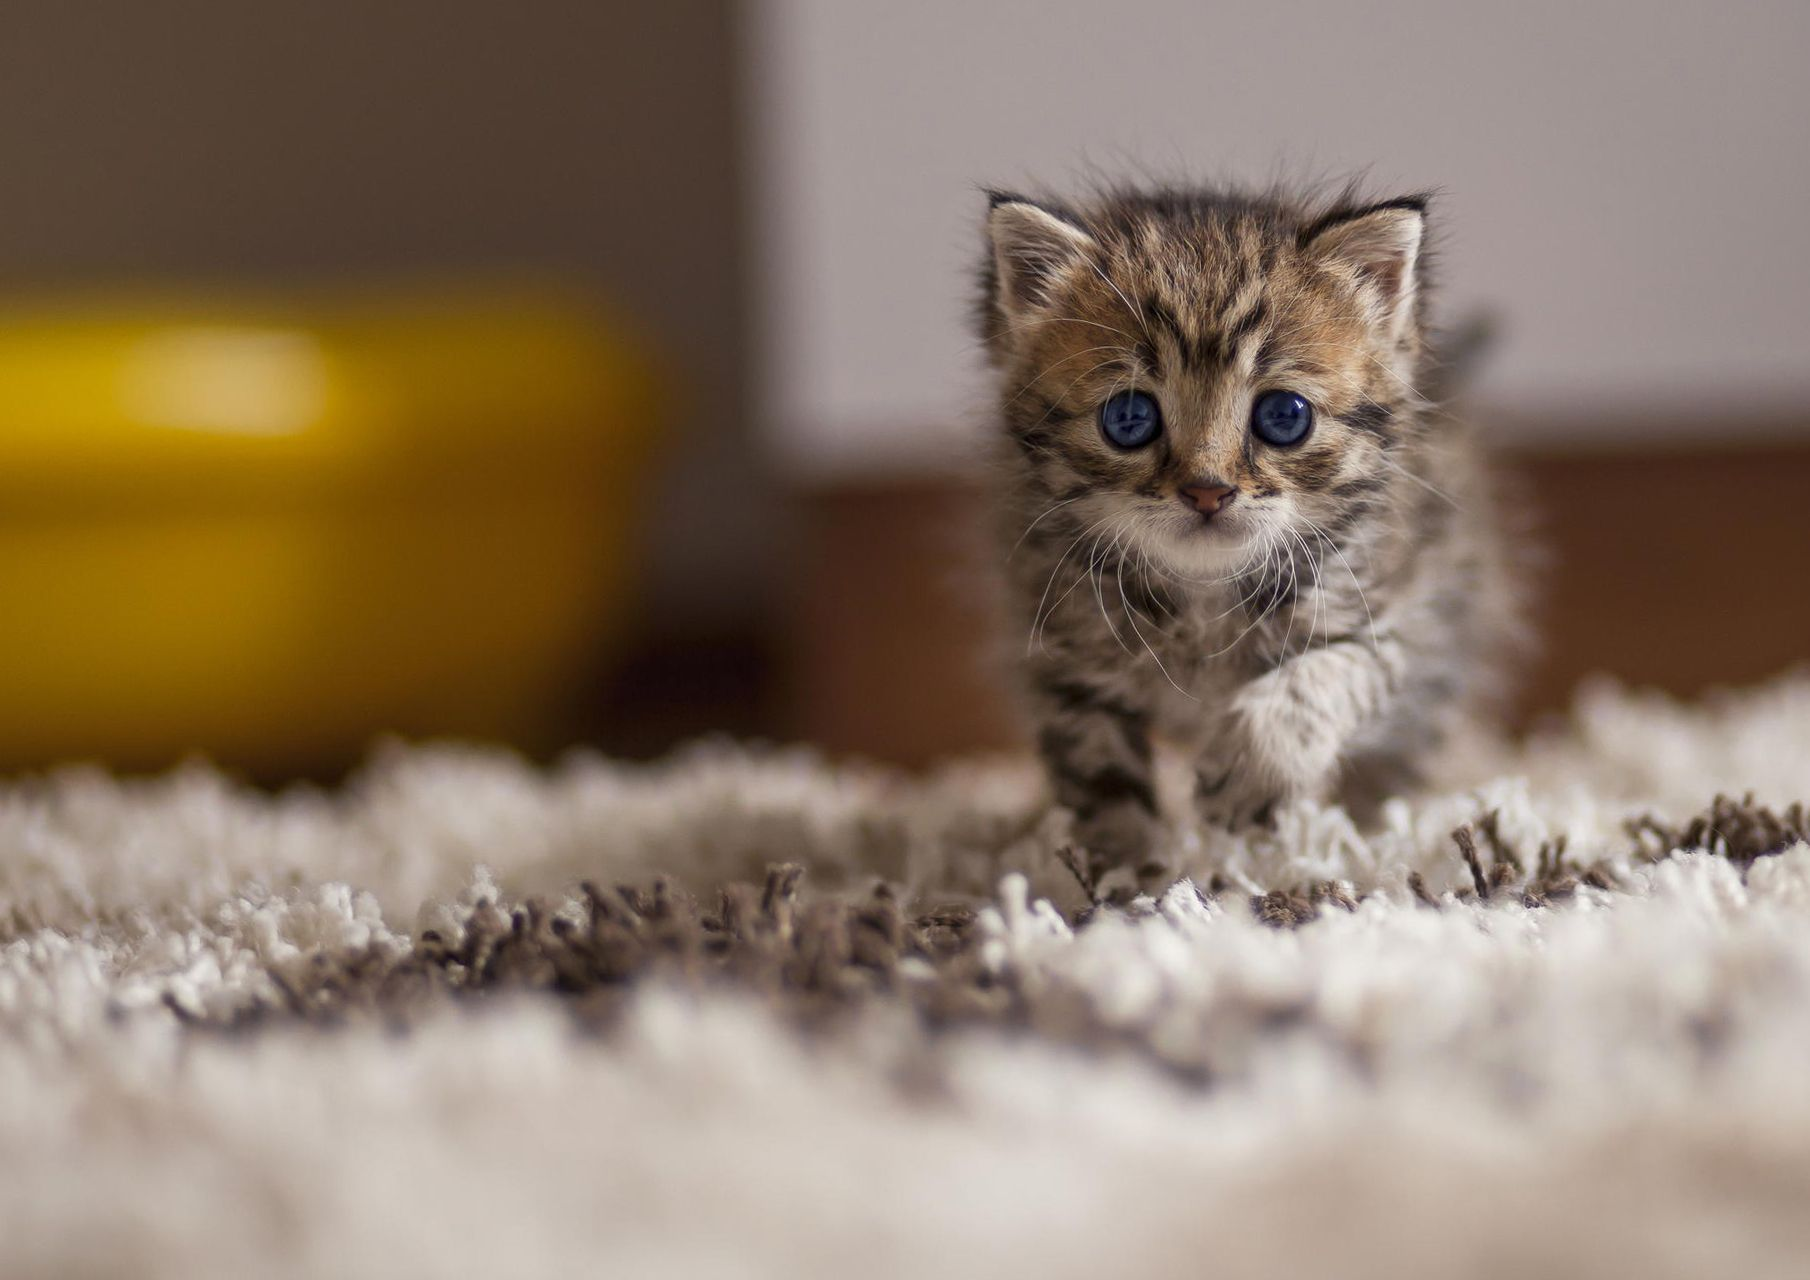 New Cats Wallpapers Download 80 Cute Cat Pics & HD Images